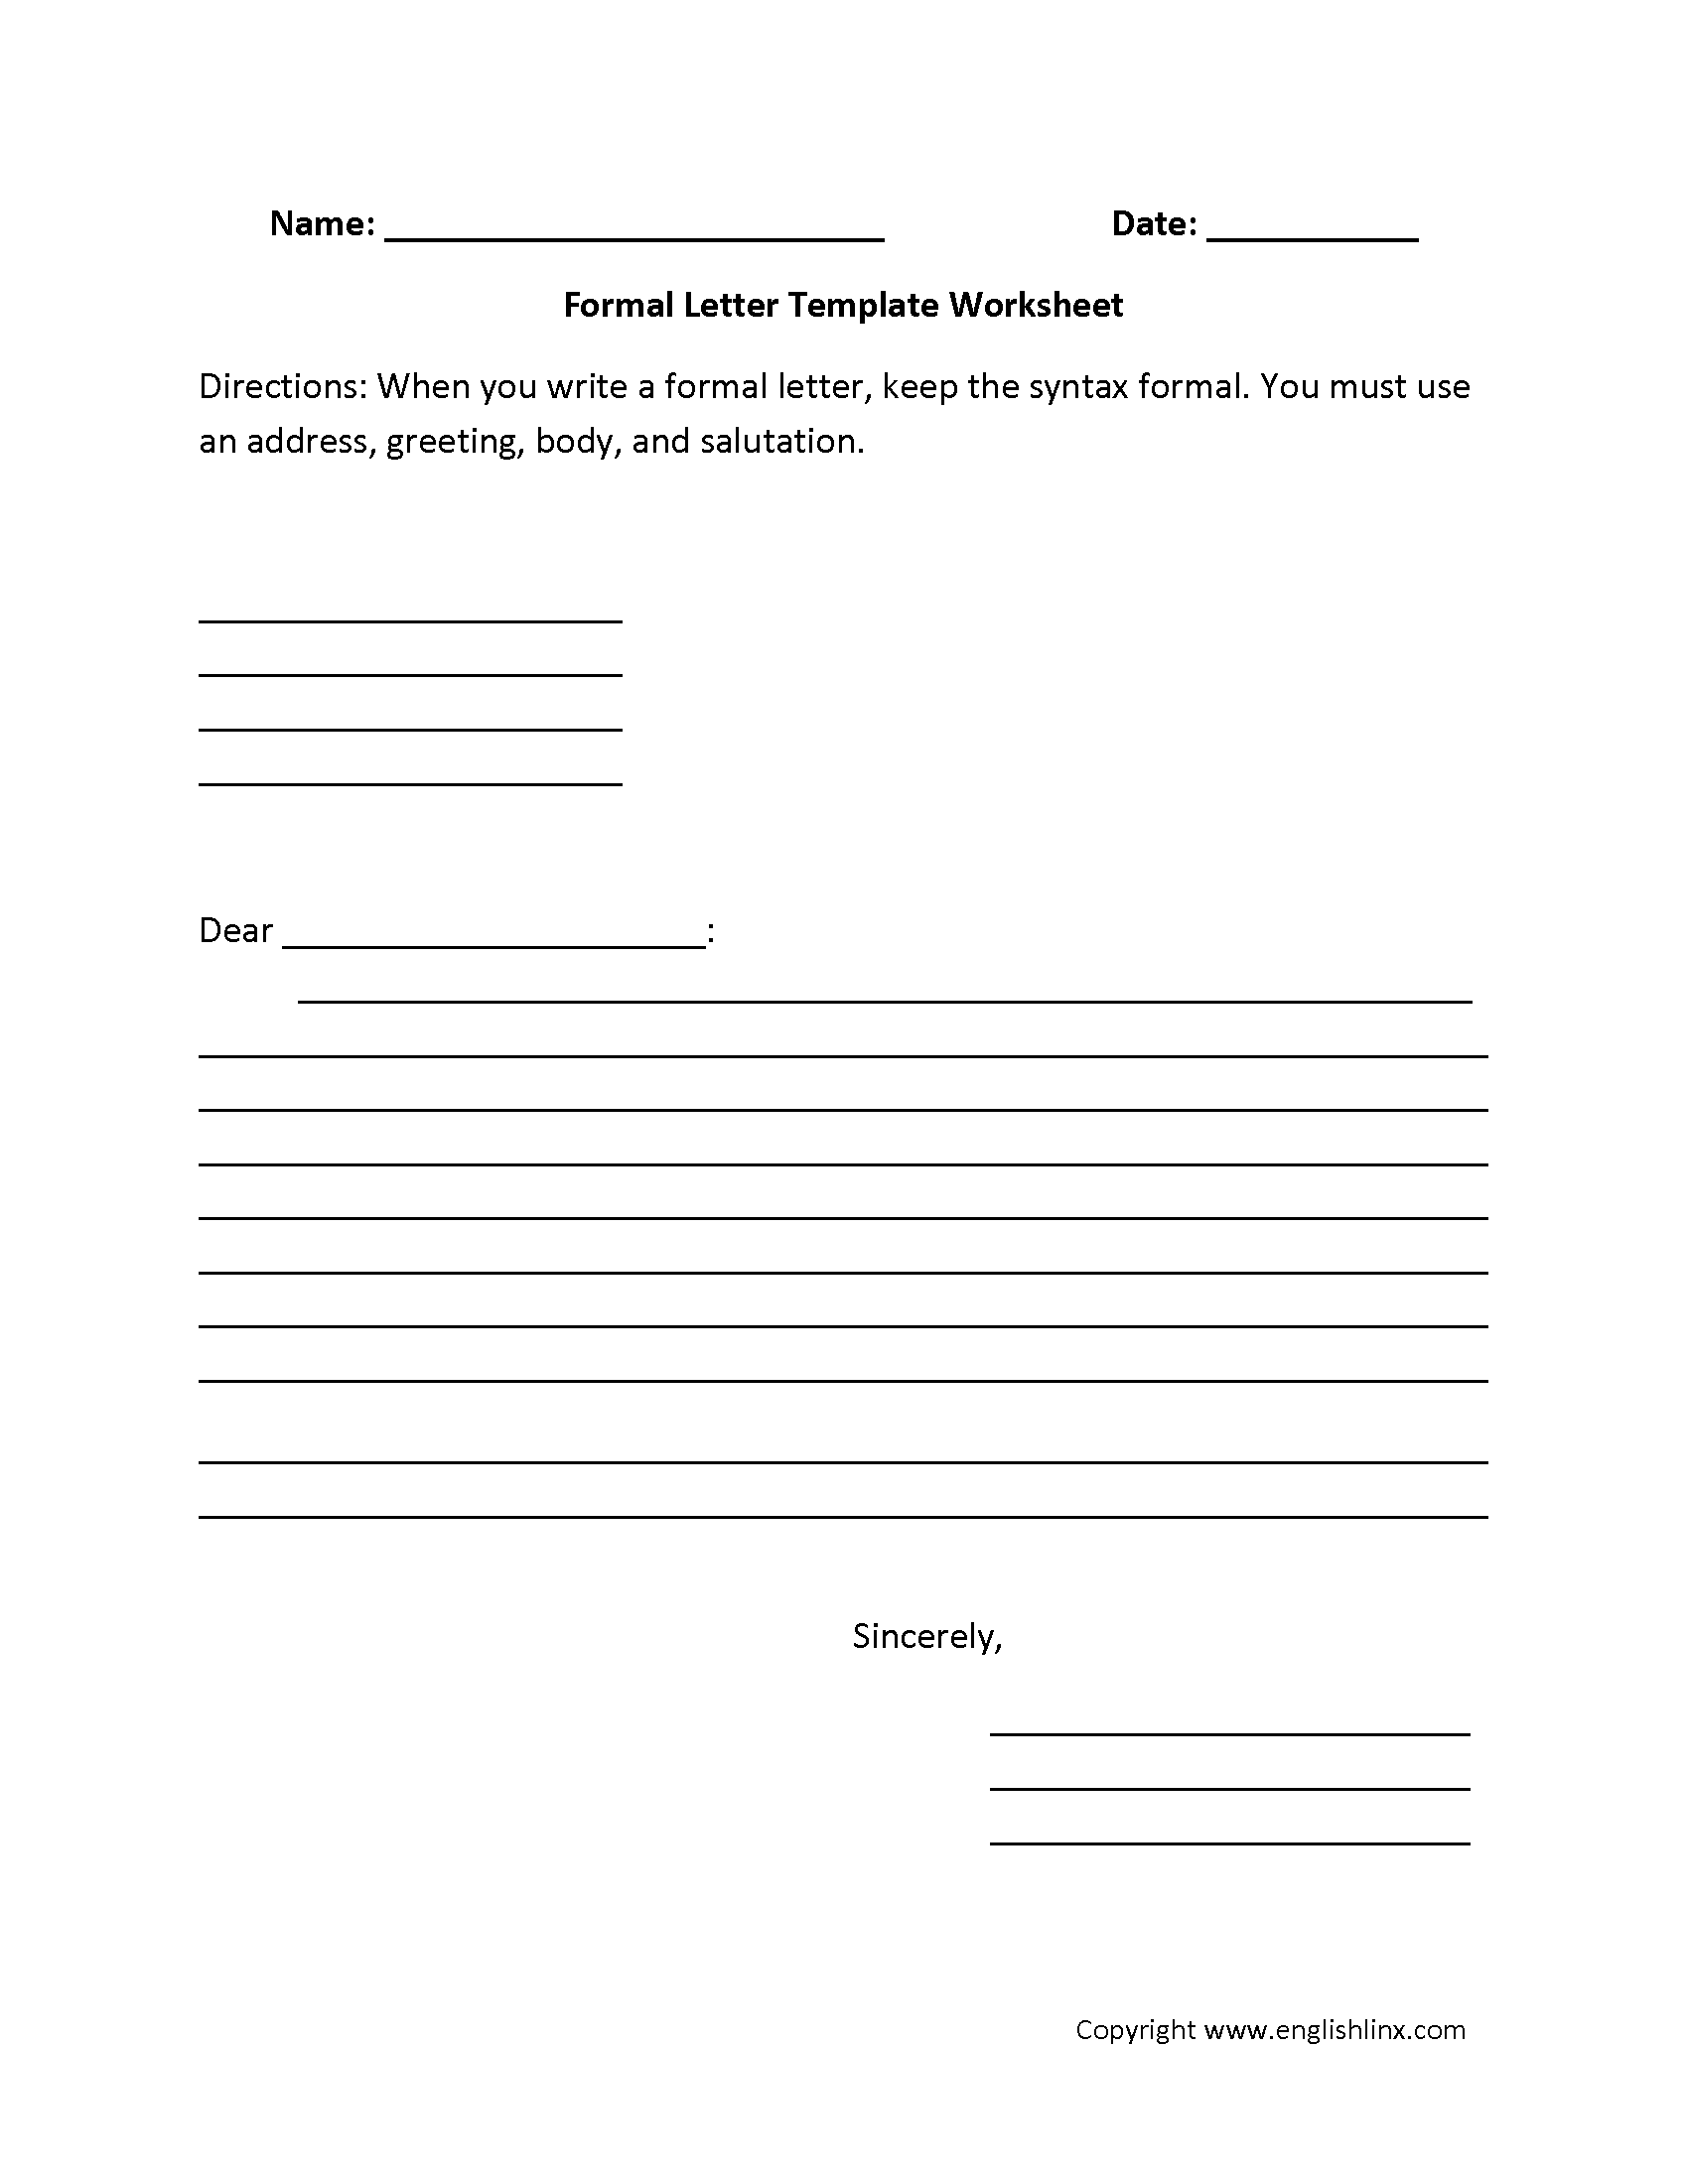 Formal Letter Writing Worksheets With Images